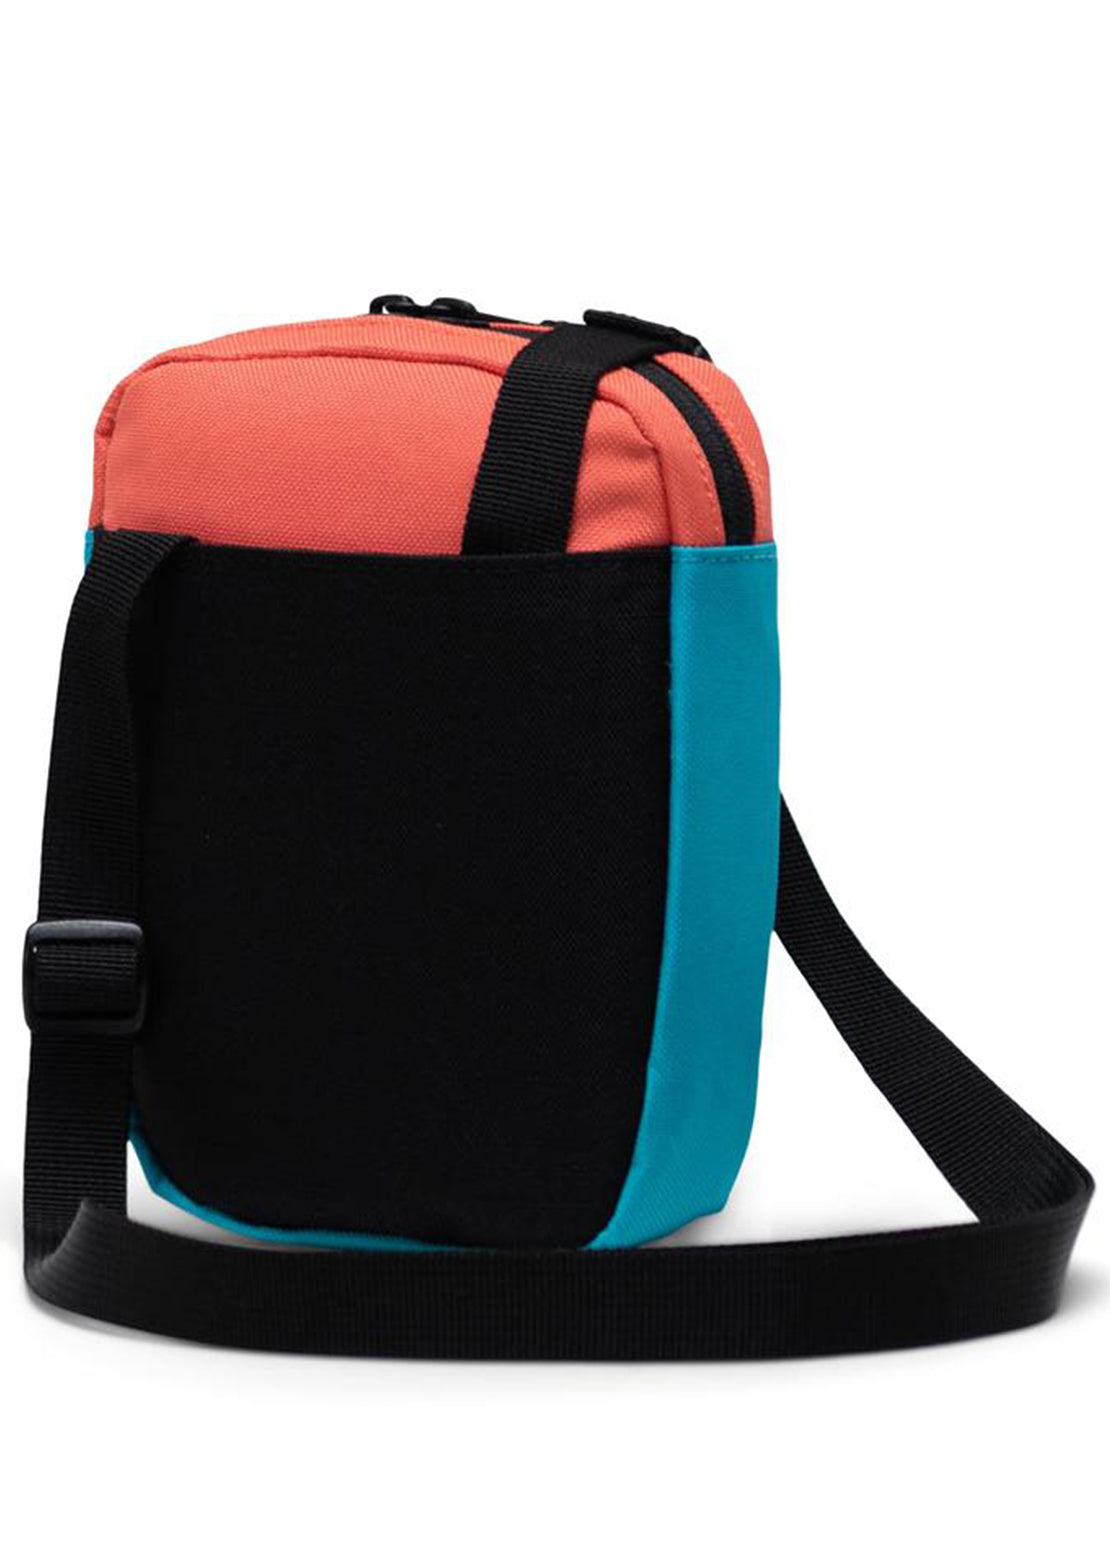 Herschel Cruz Crossbody Bag Blue Bird/Black/Emberglow